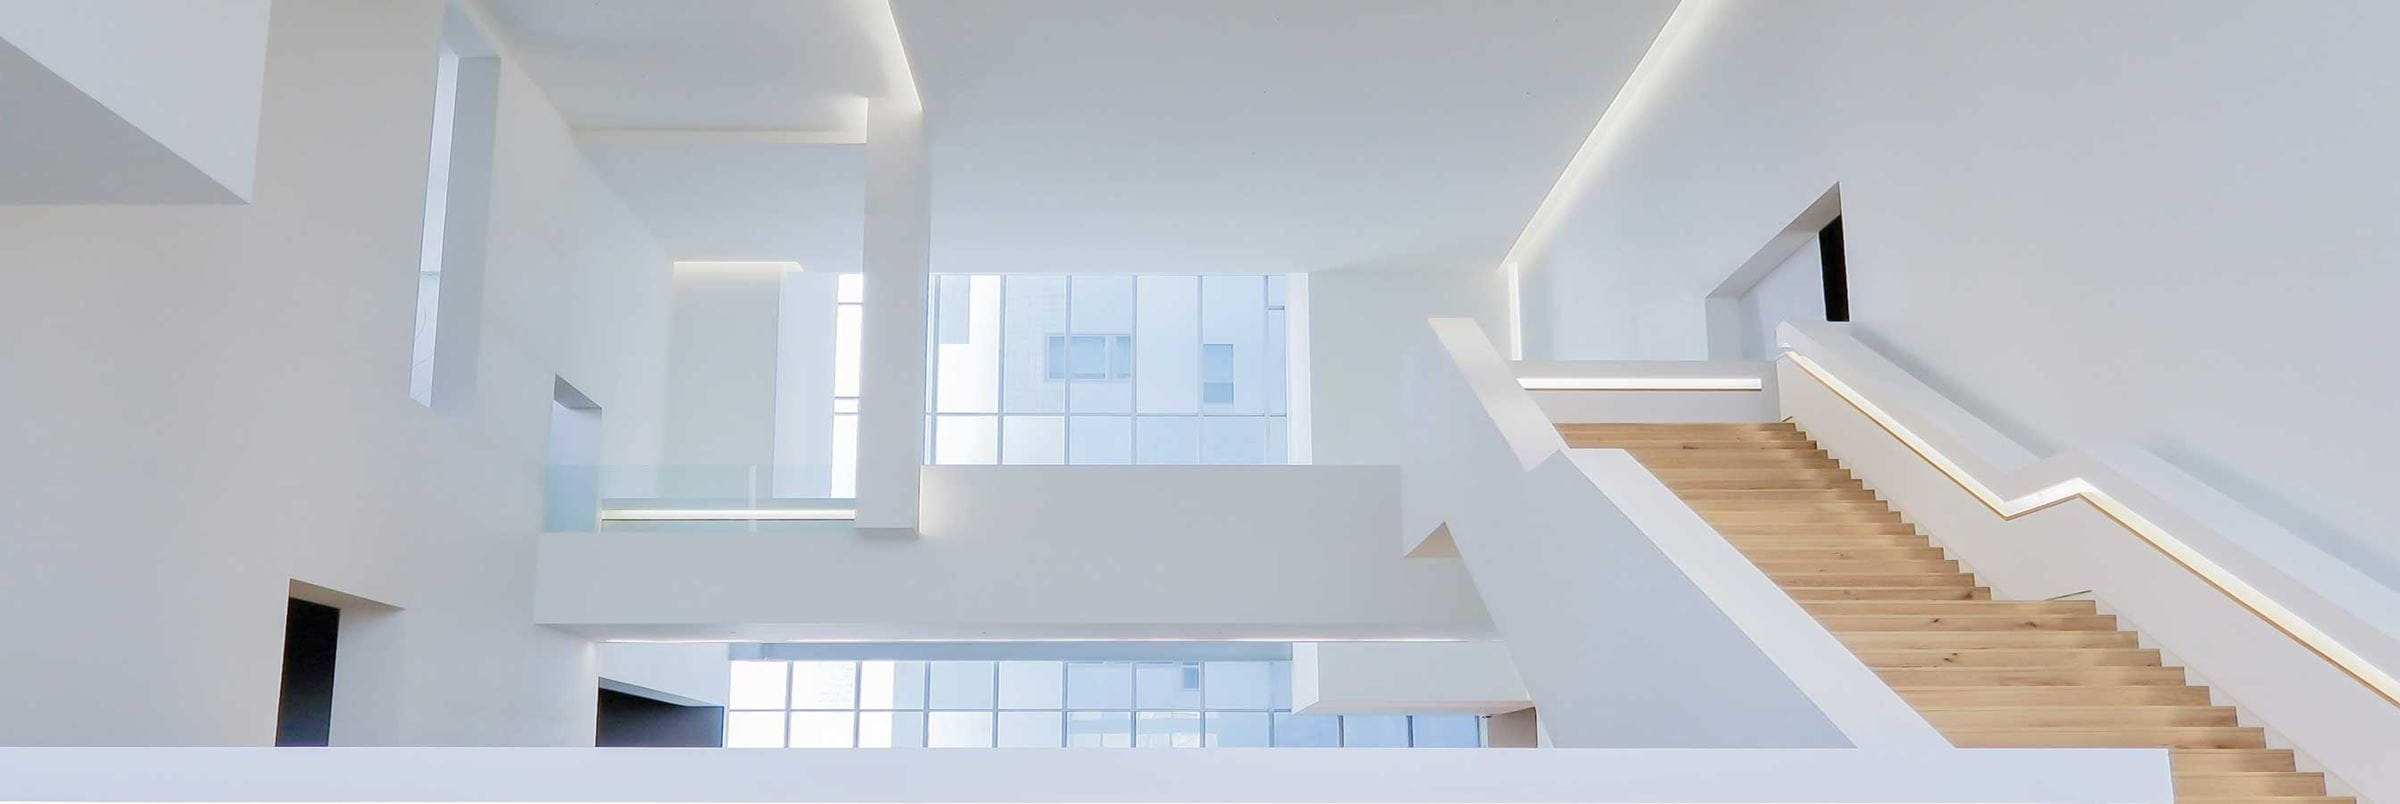 A white interior of a house with a staircase and a long window